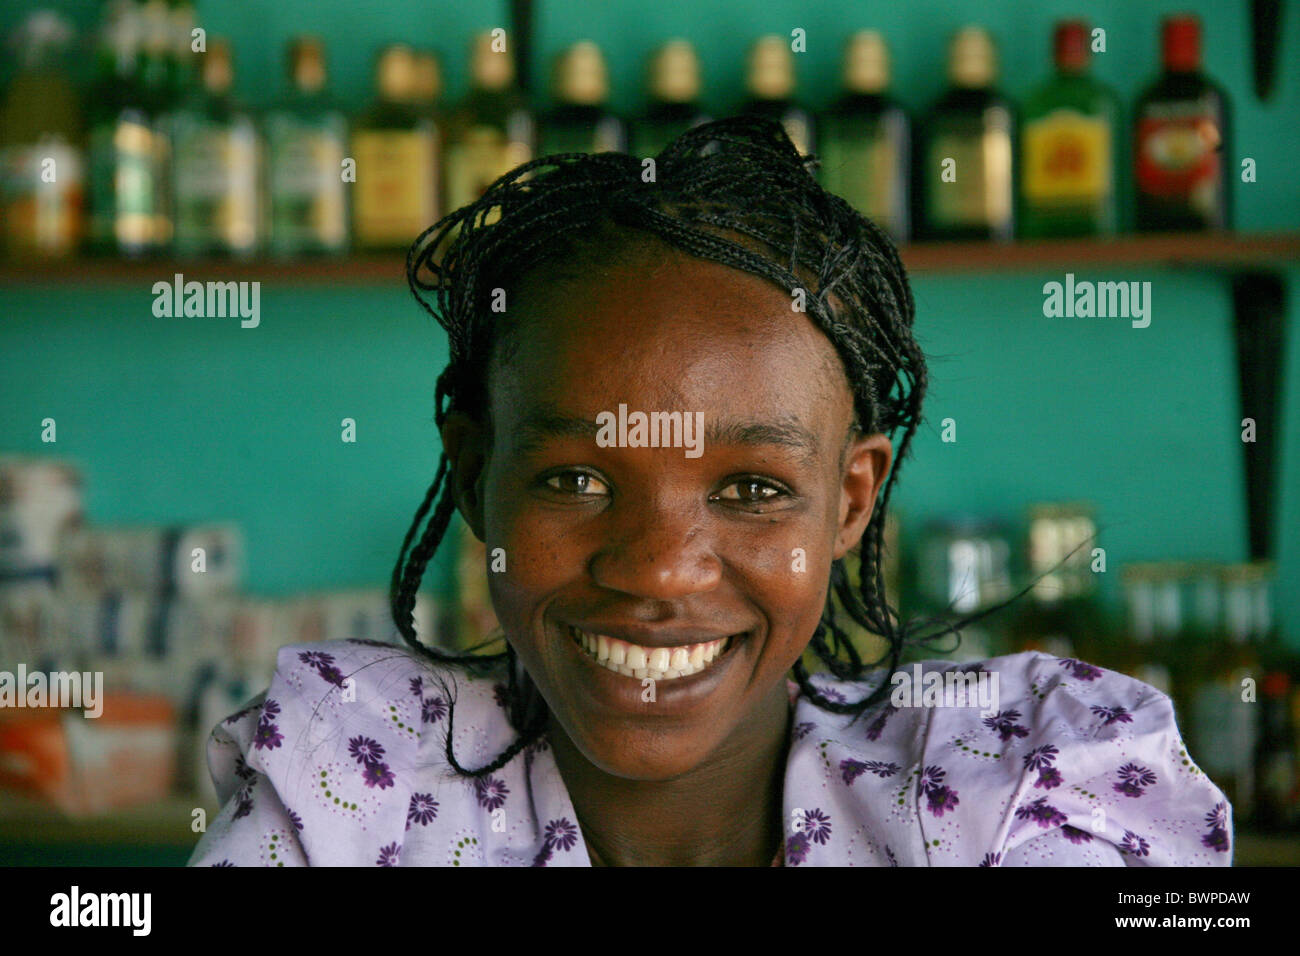 Namibia Africa Herero people Summer 2007 Africa local woman portrait smiling bar native natives - Stock Image